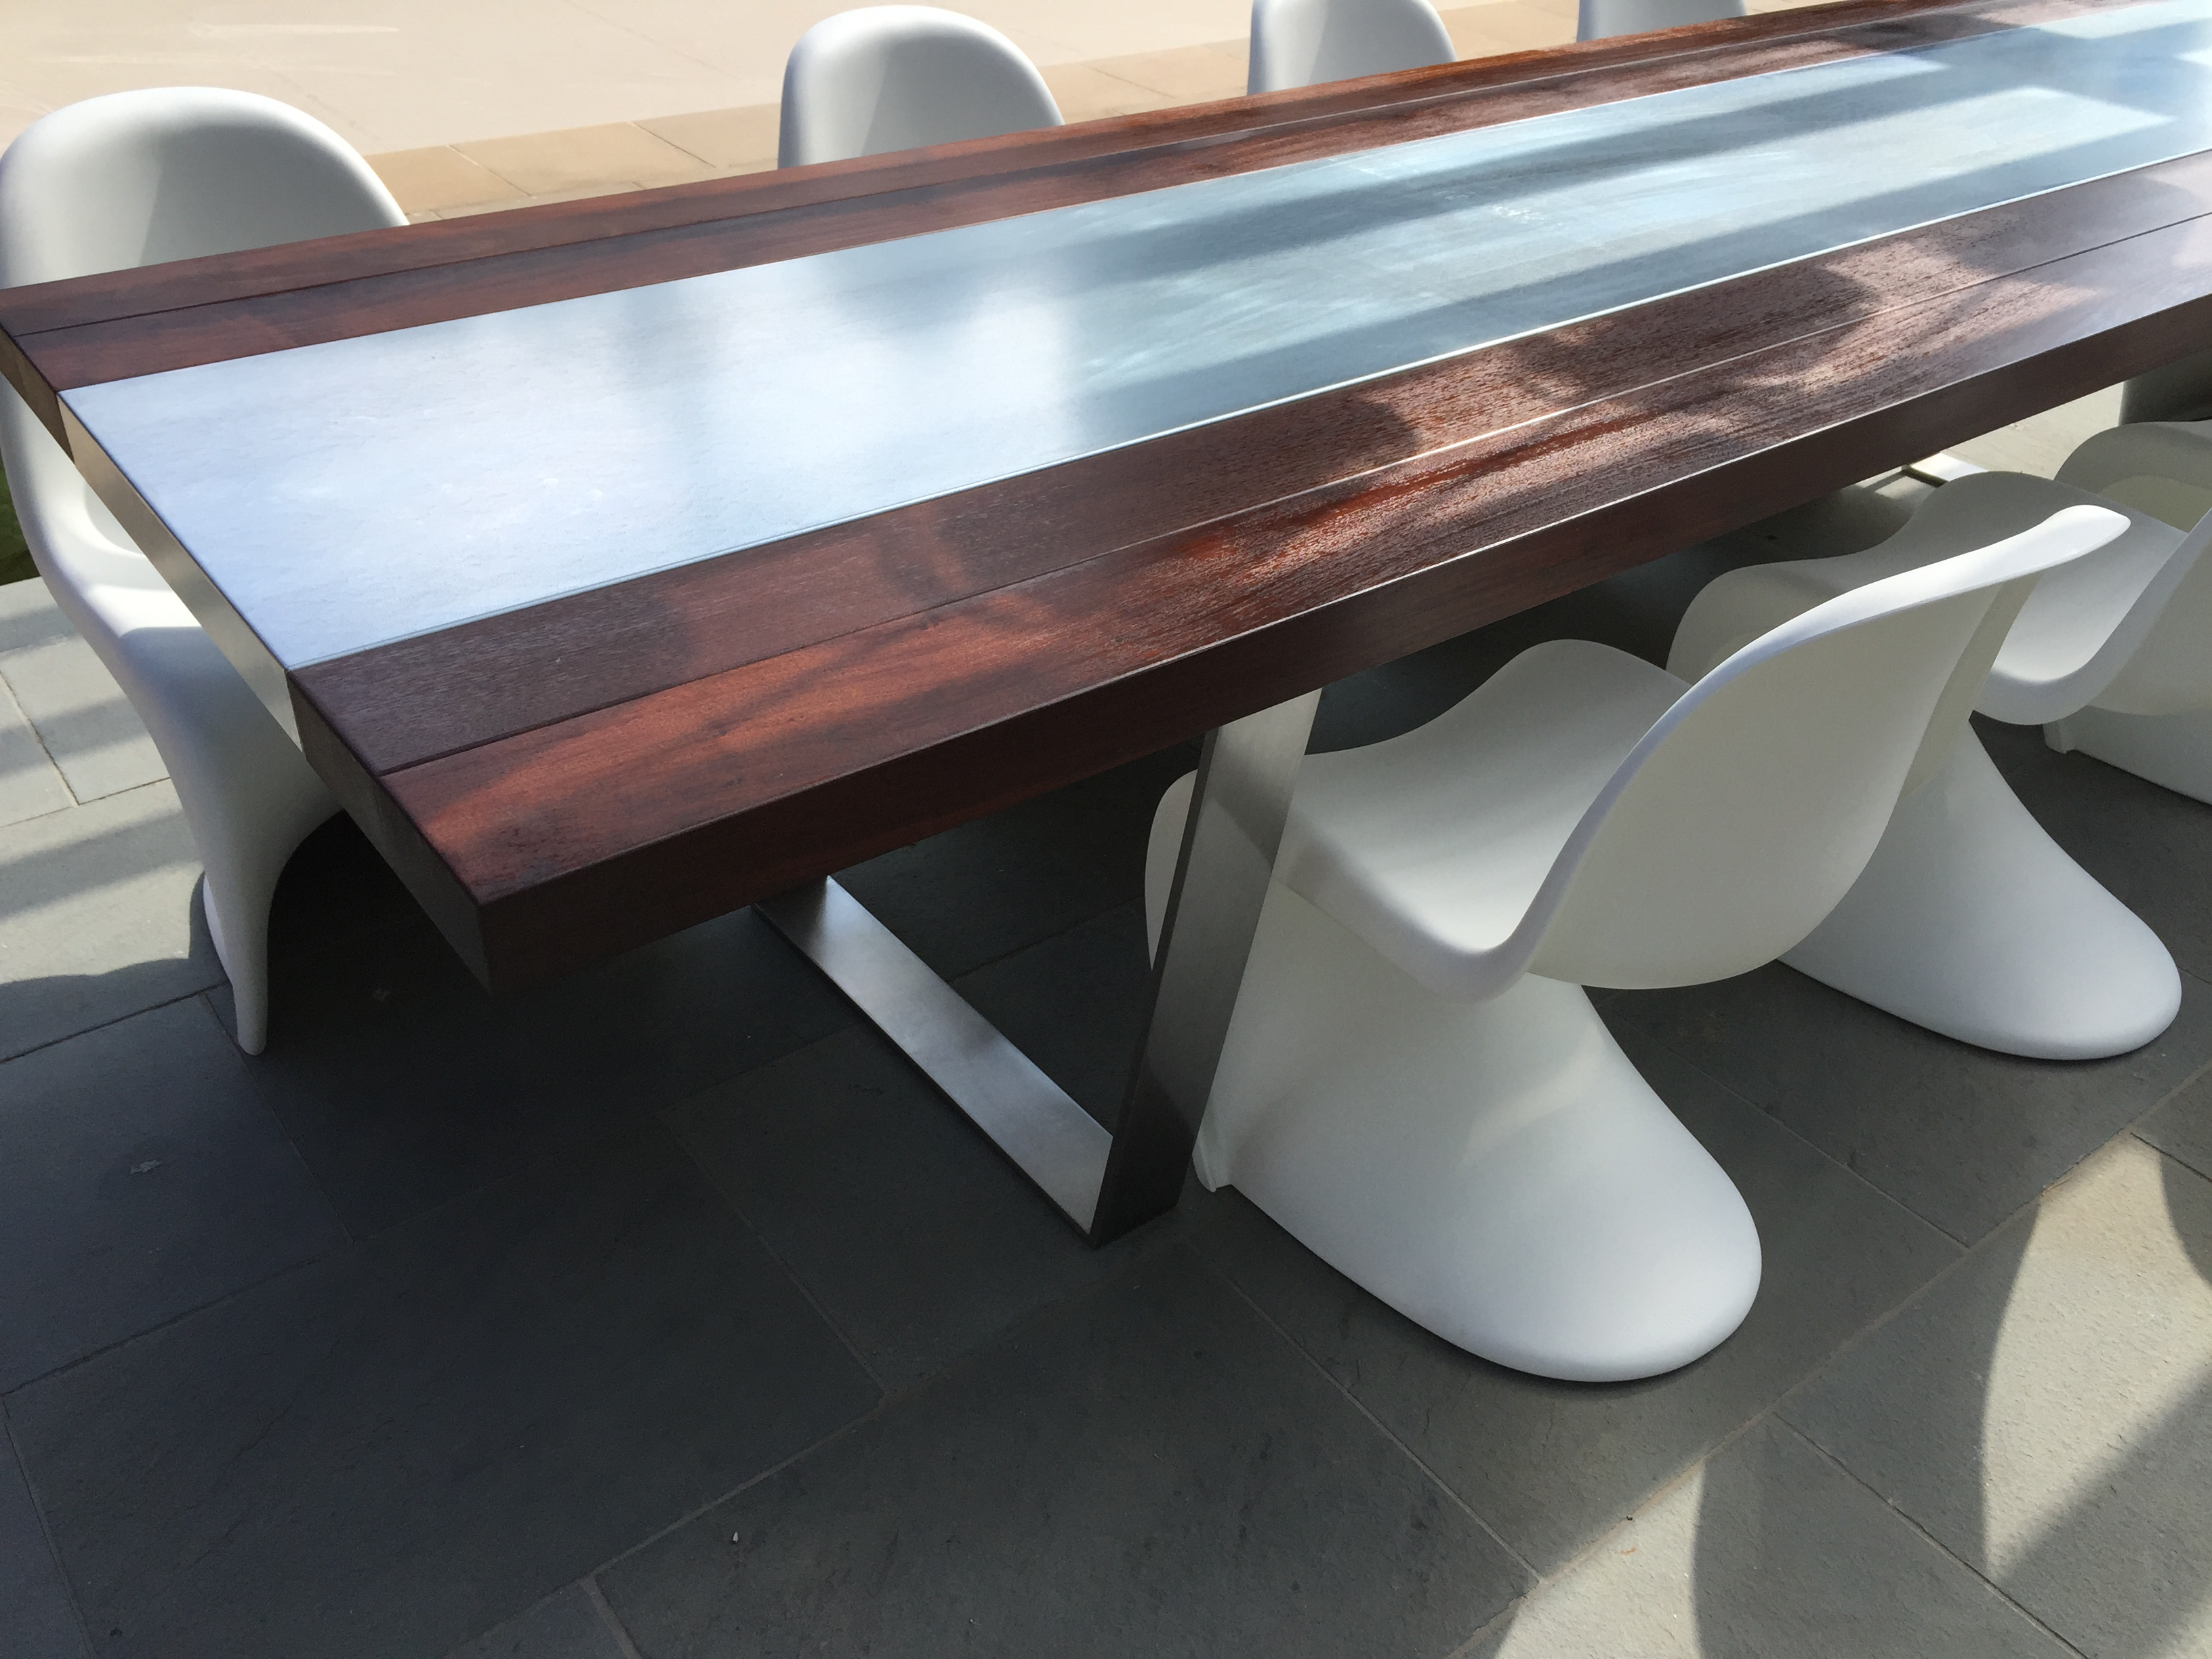 OUTDOOR GALVANIZED AND TEAK TABLE